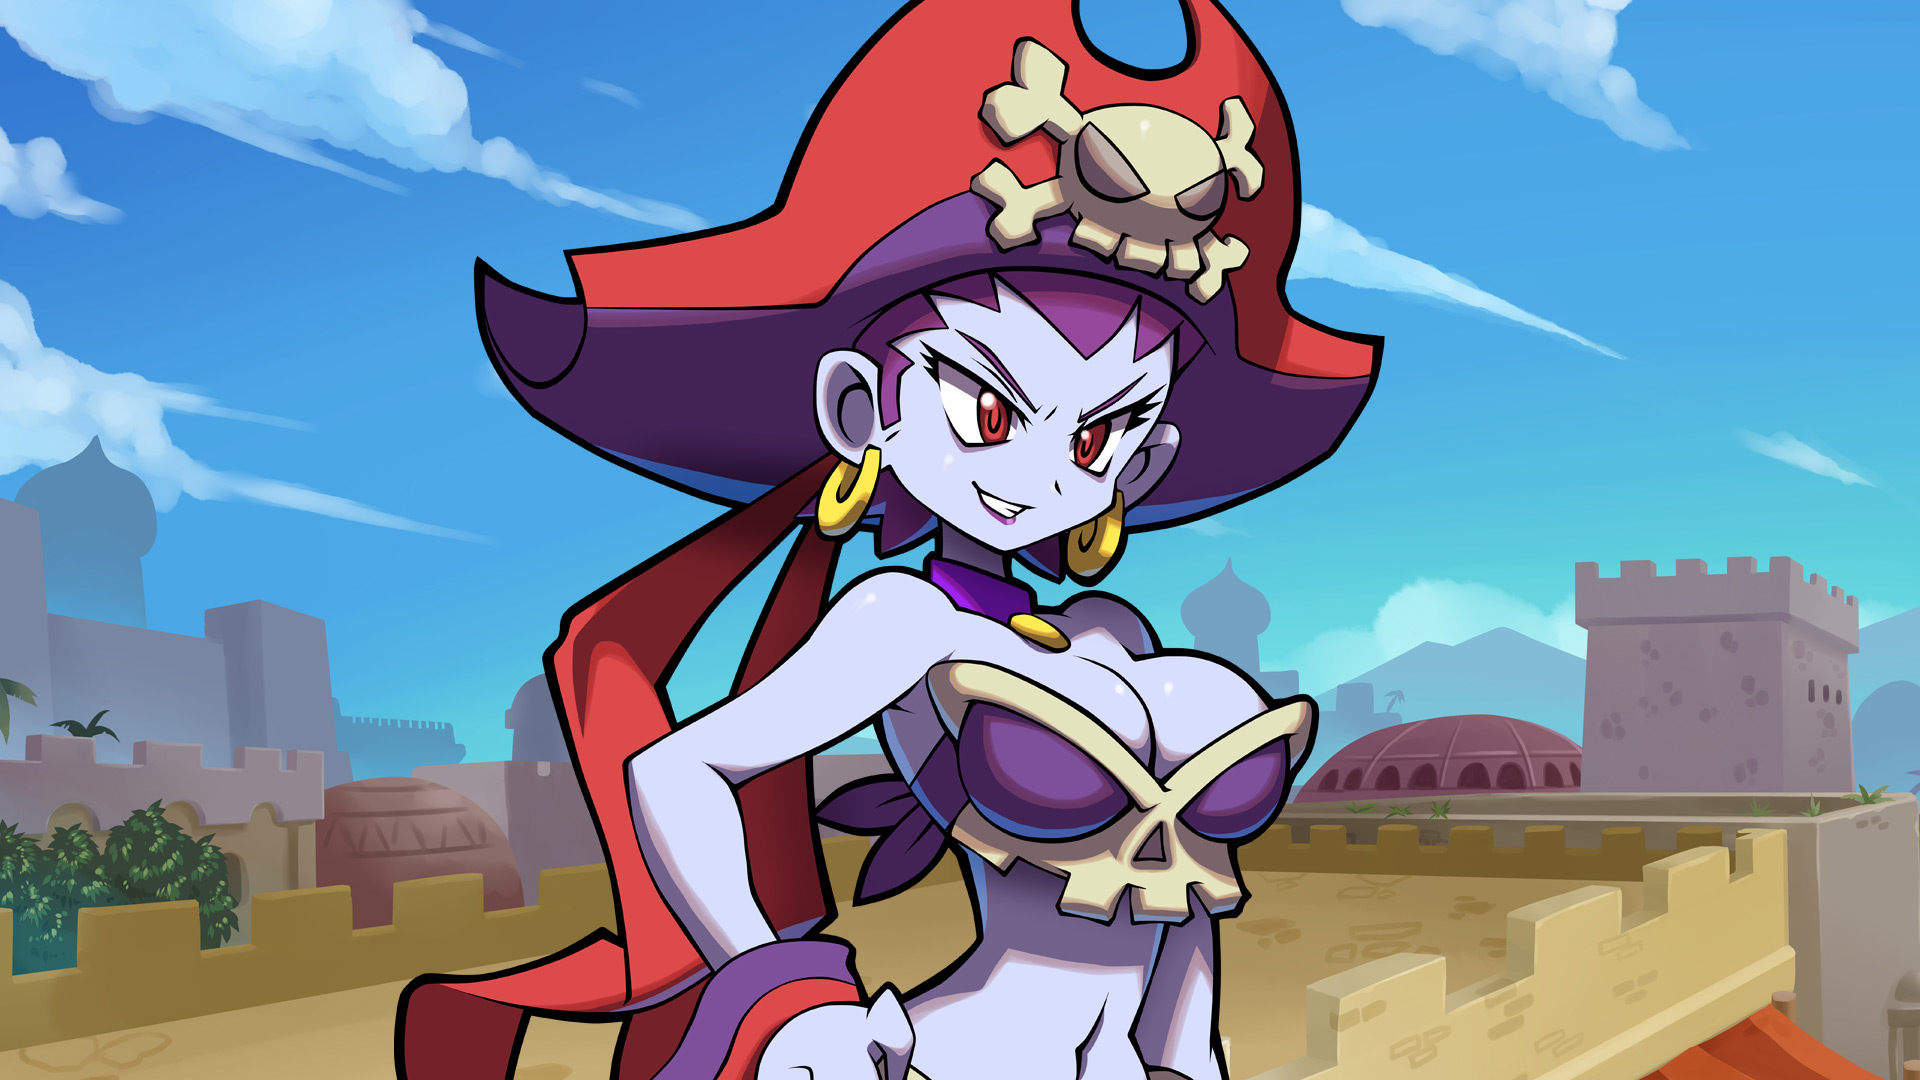 image Risky boots x tinkerbat futa 20 animation by lusty lizard